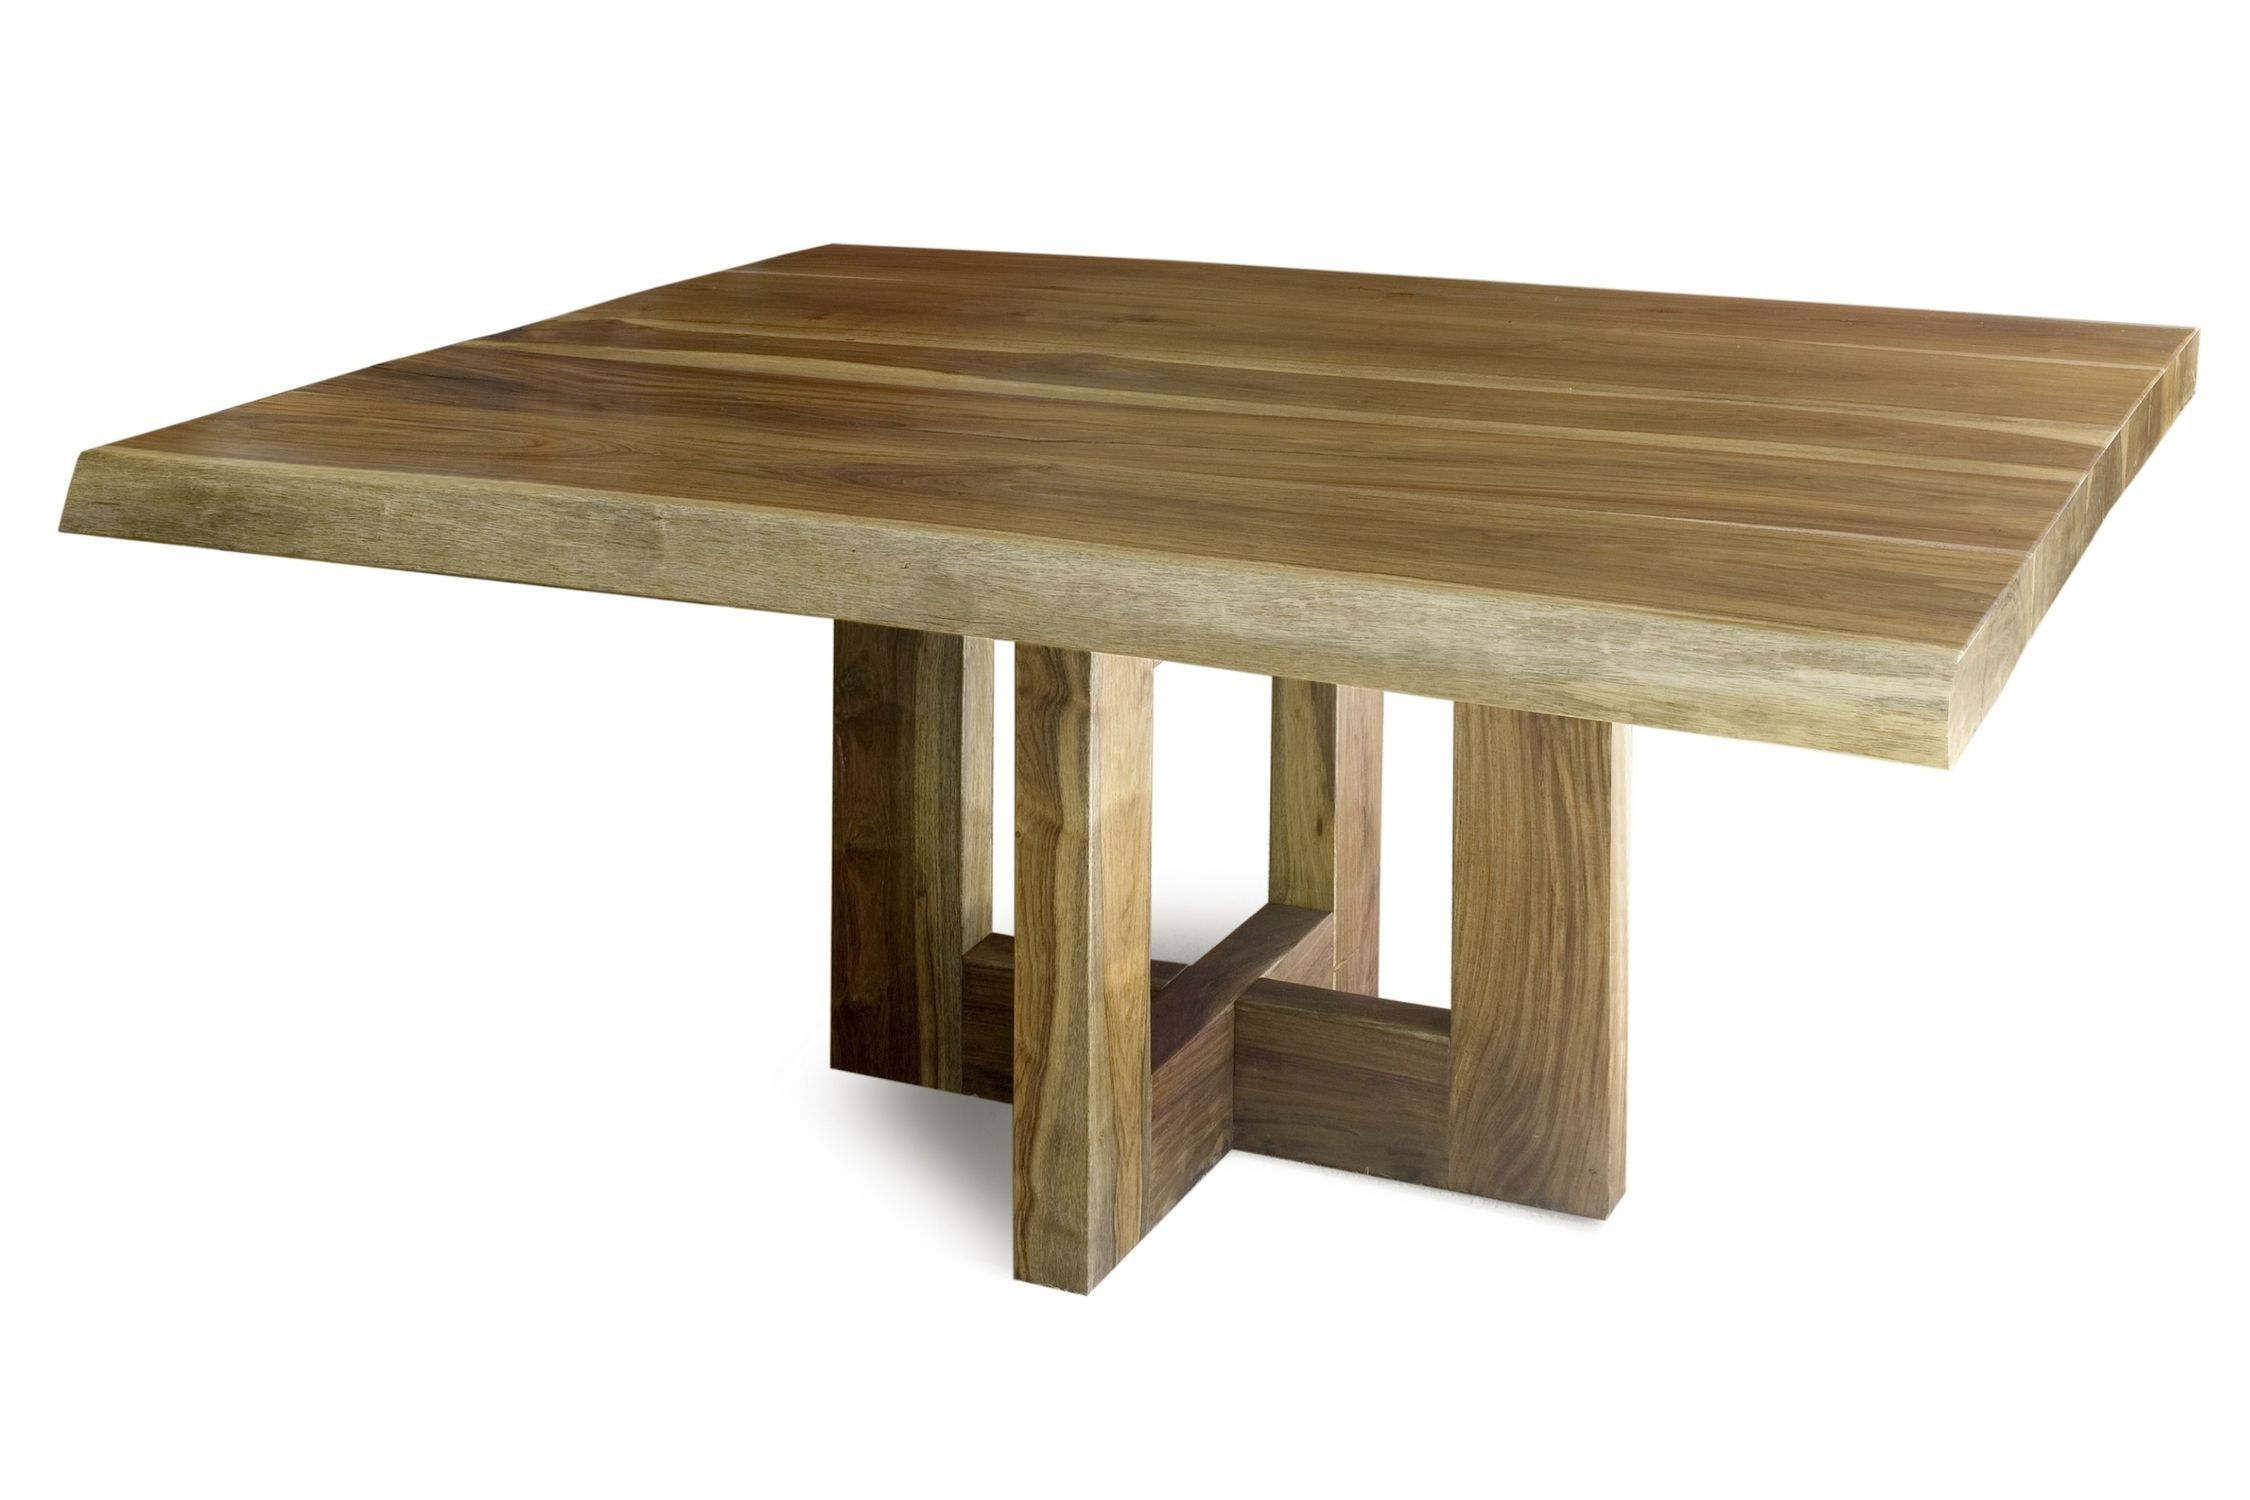 Contemporary rectangle unfinished reclaimed wood table for for Contemporary rectangular dining table